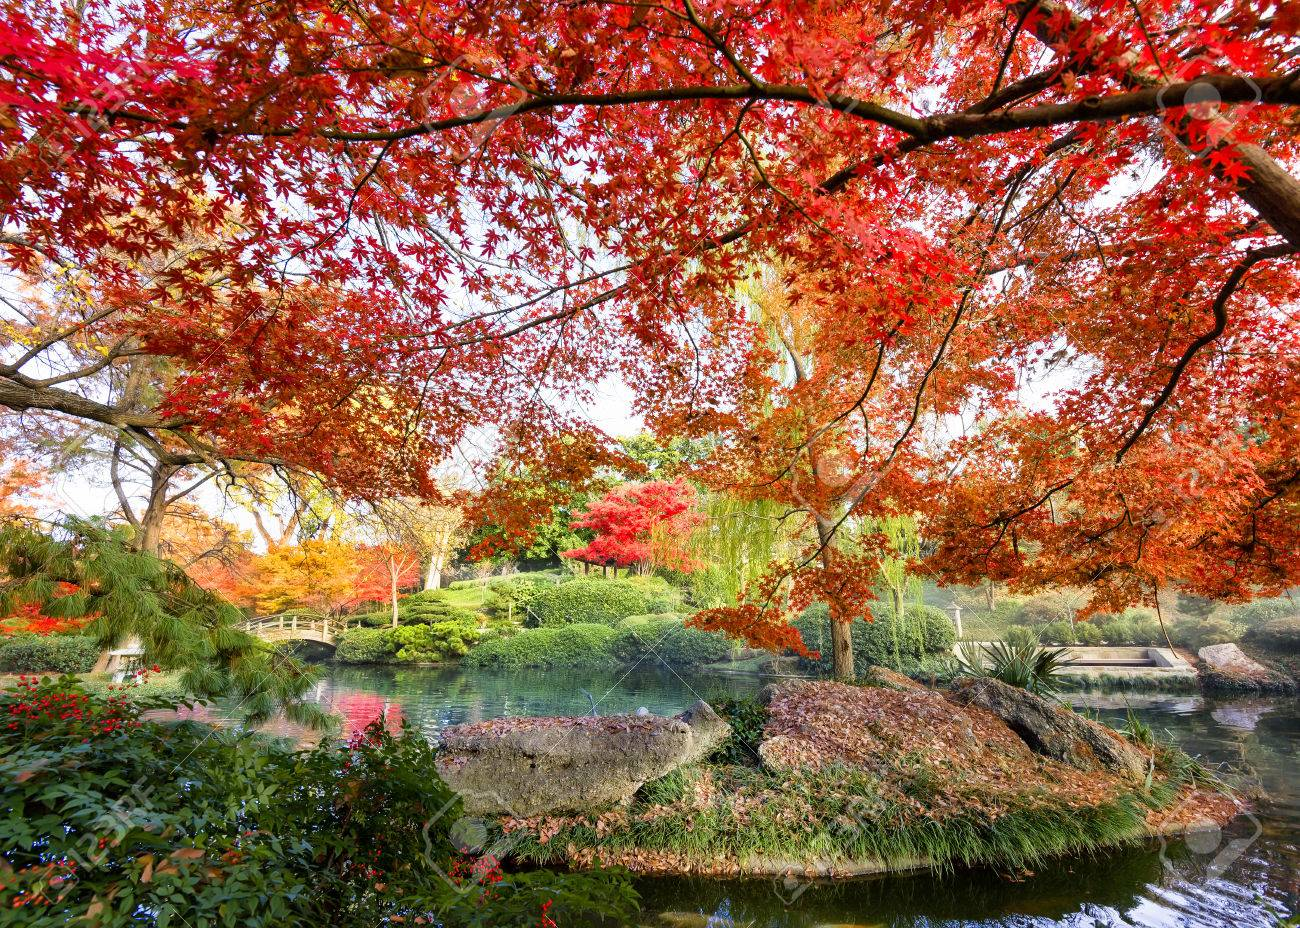 A Burst Of Fall Color Over A Texas Pond With Japanese Maple Trees